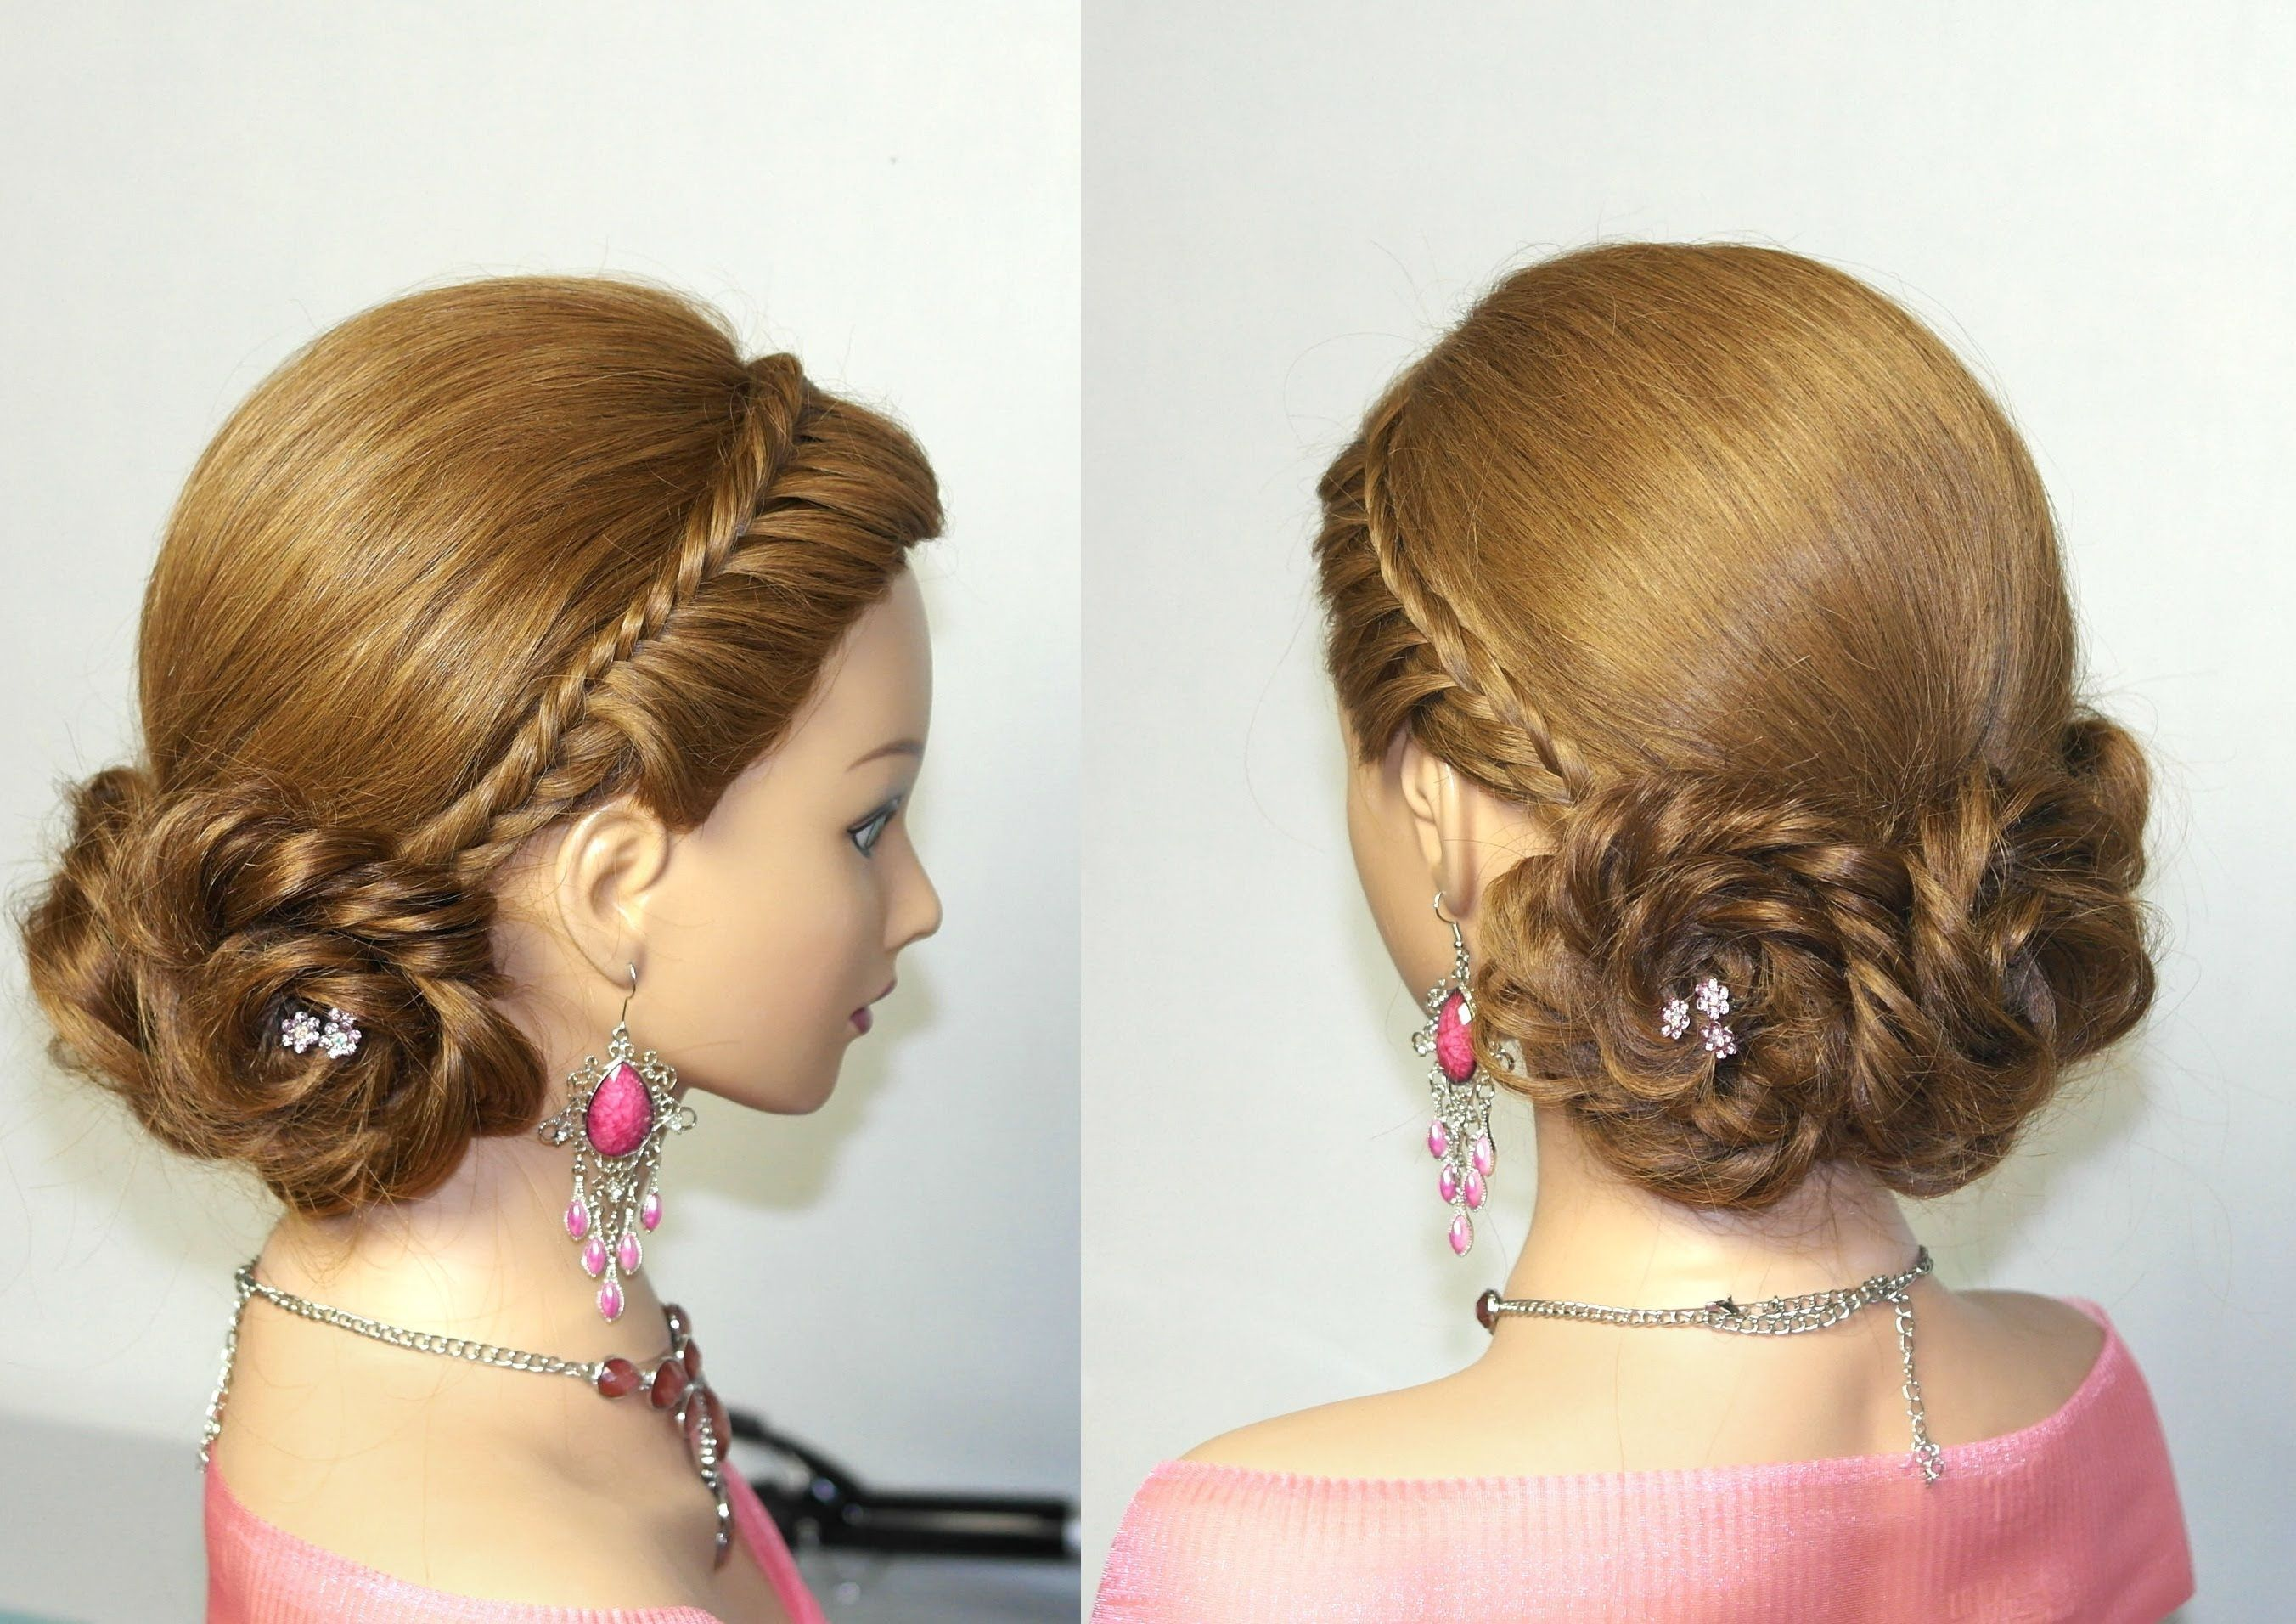 Prom, bridal hairstyles for long hair. Braided updo